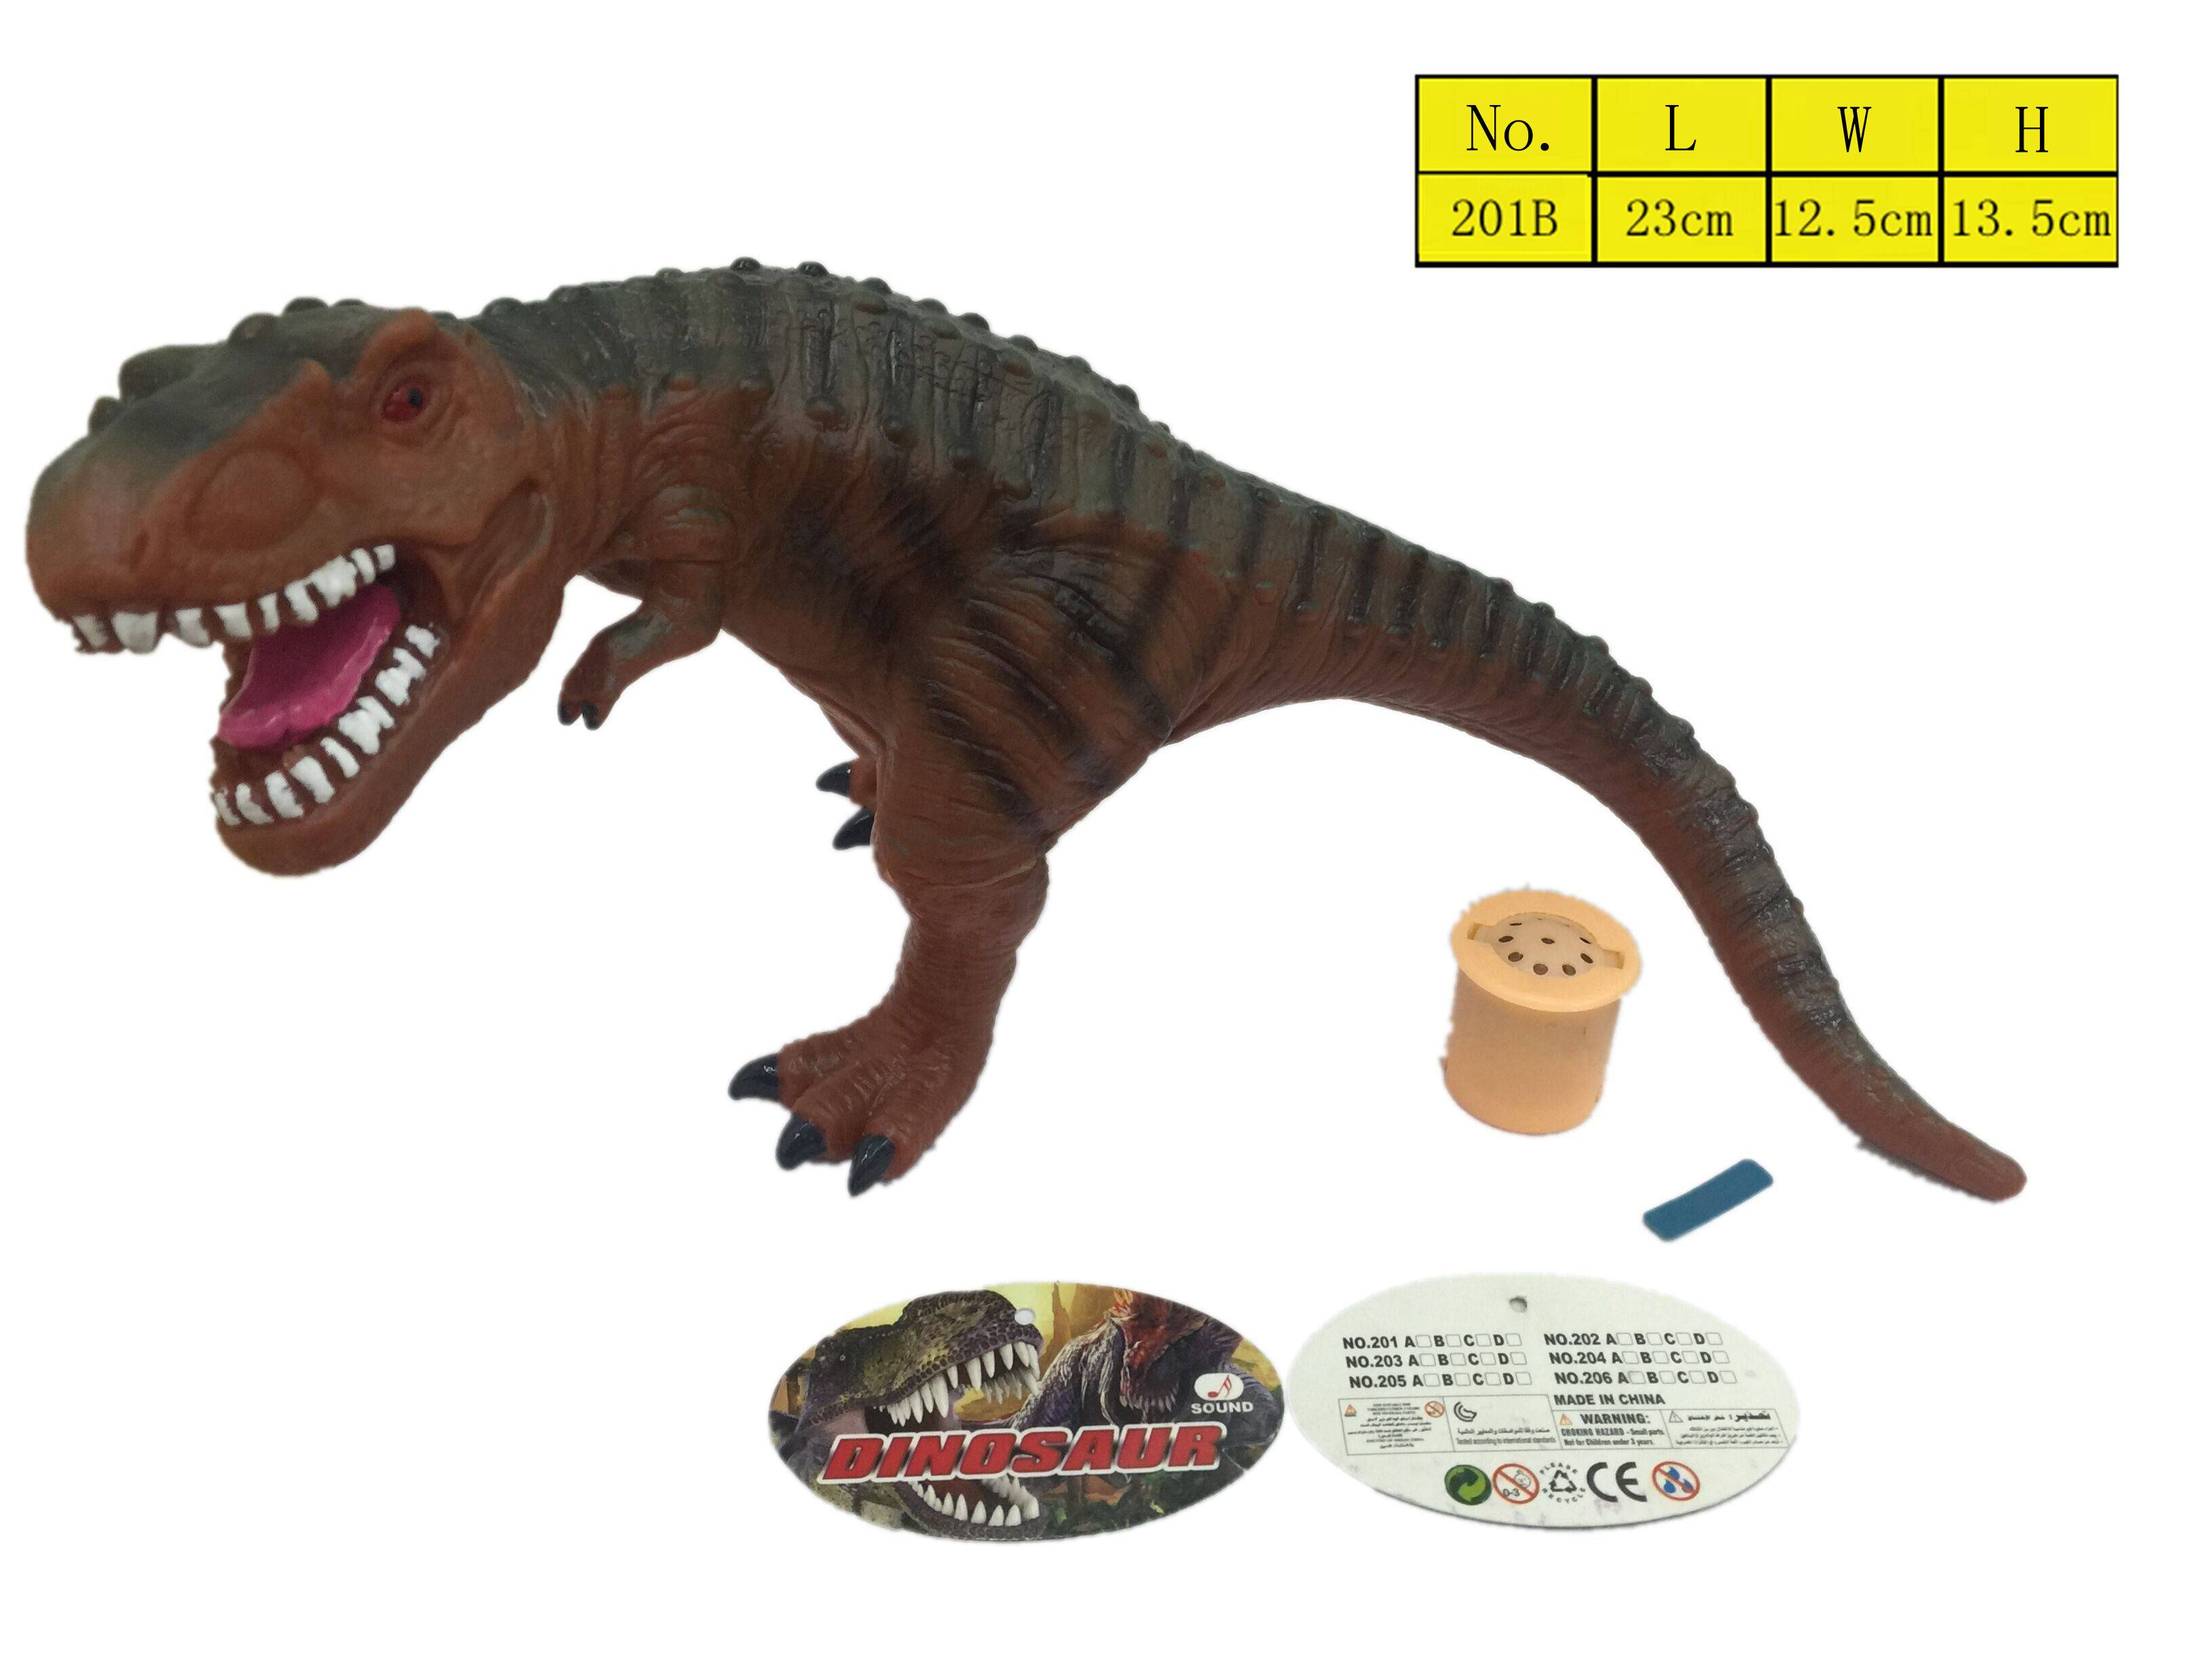 2016 Top sell Jurassic Park Dinosaur vinyl Toys Environmental Gifts for Kids